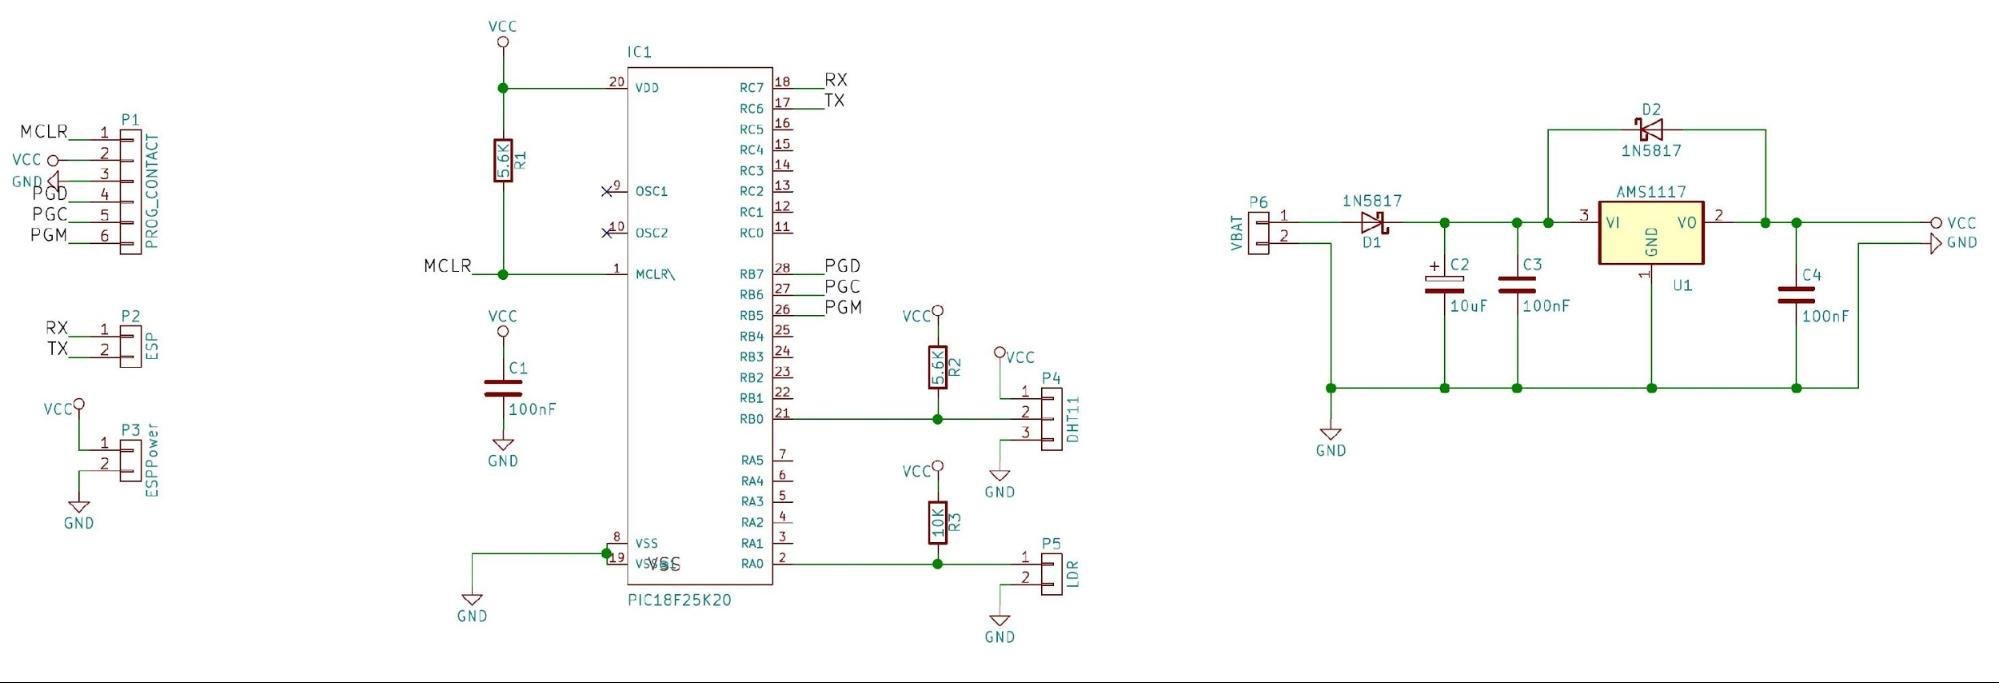 DIY-Explorer-Schematic.jpg